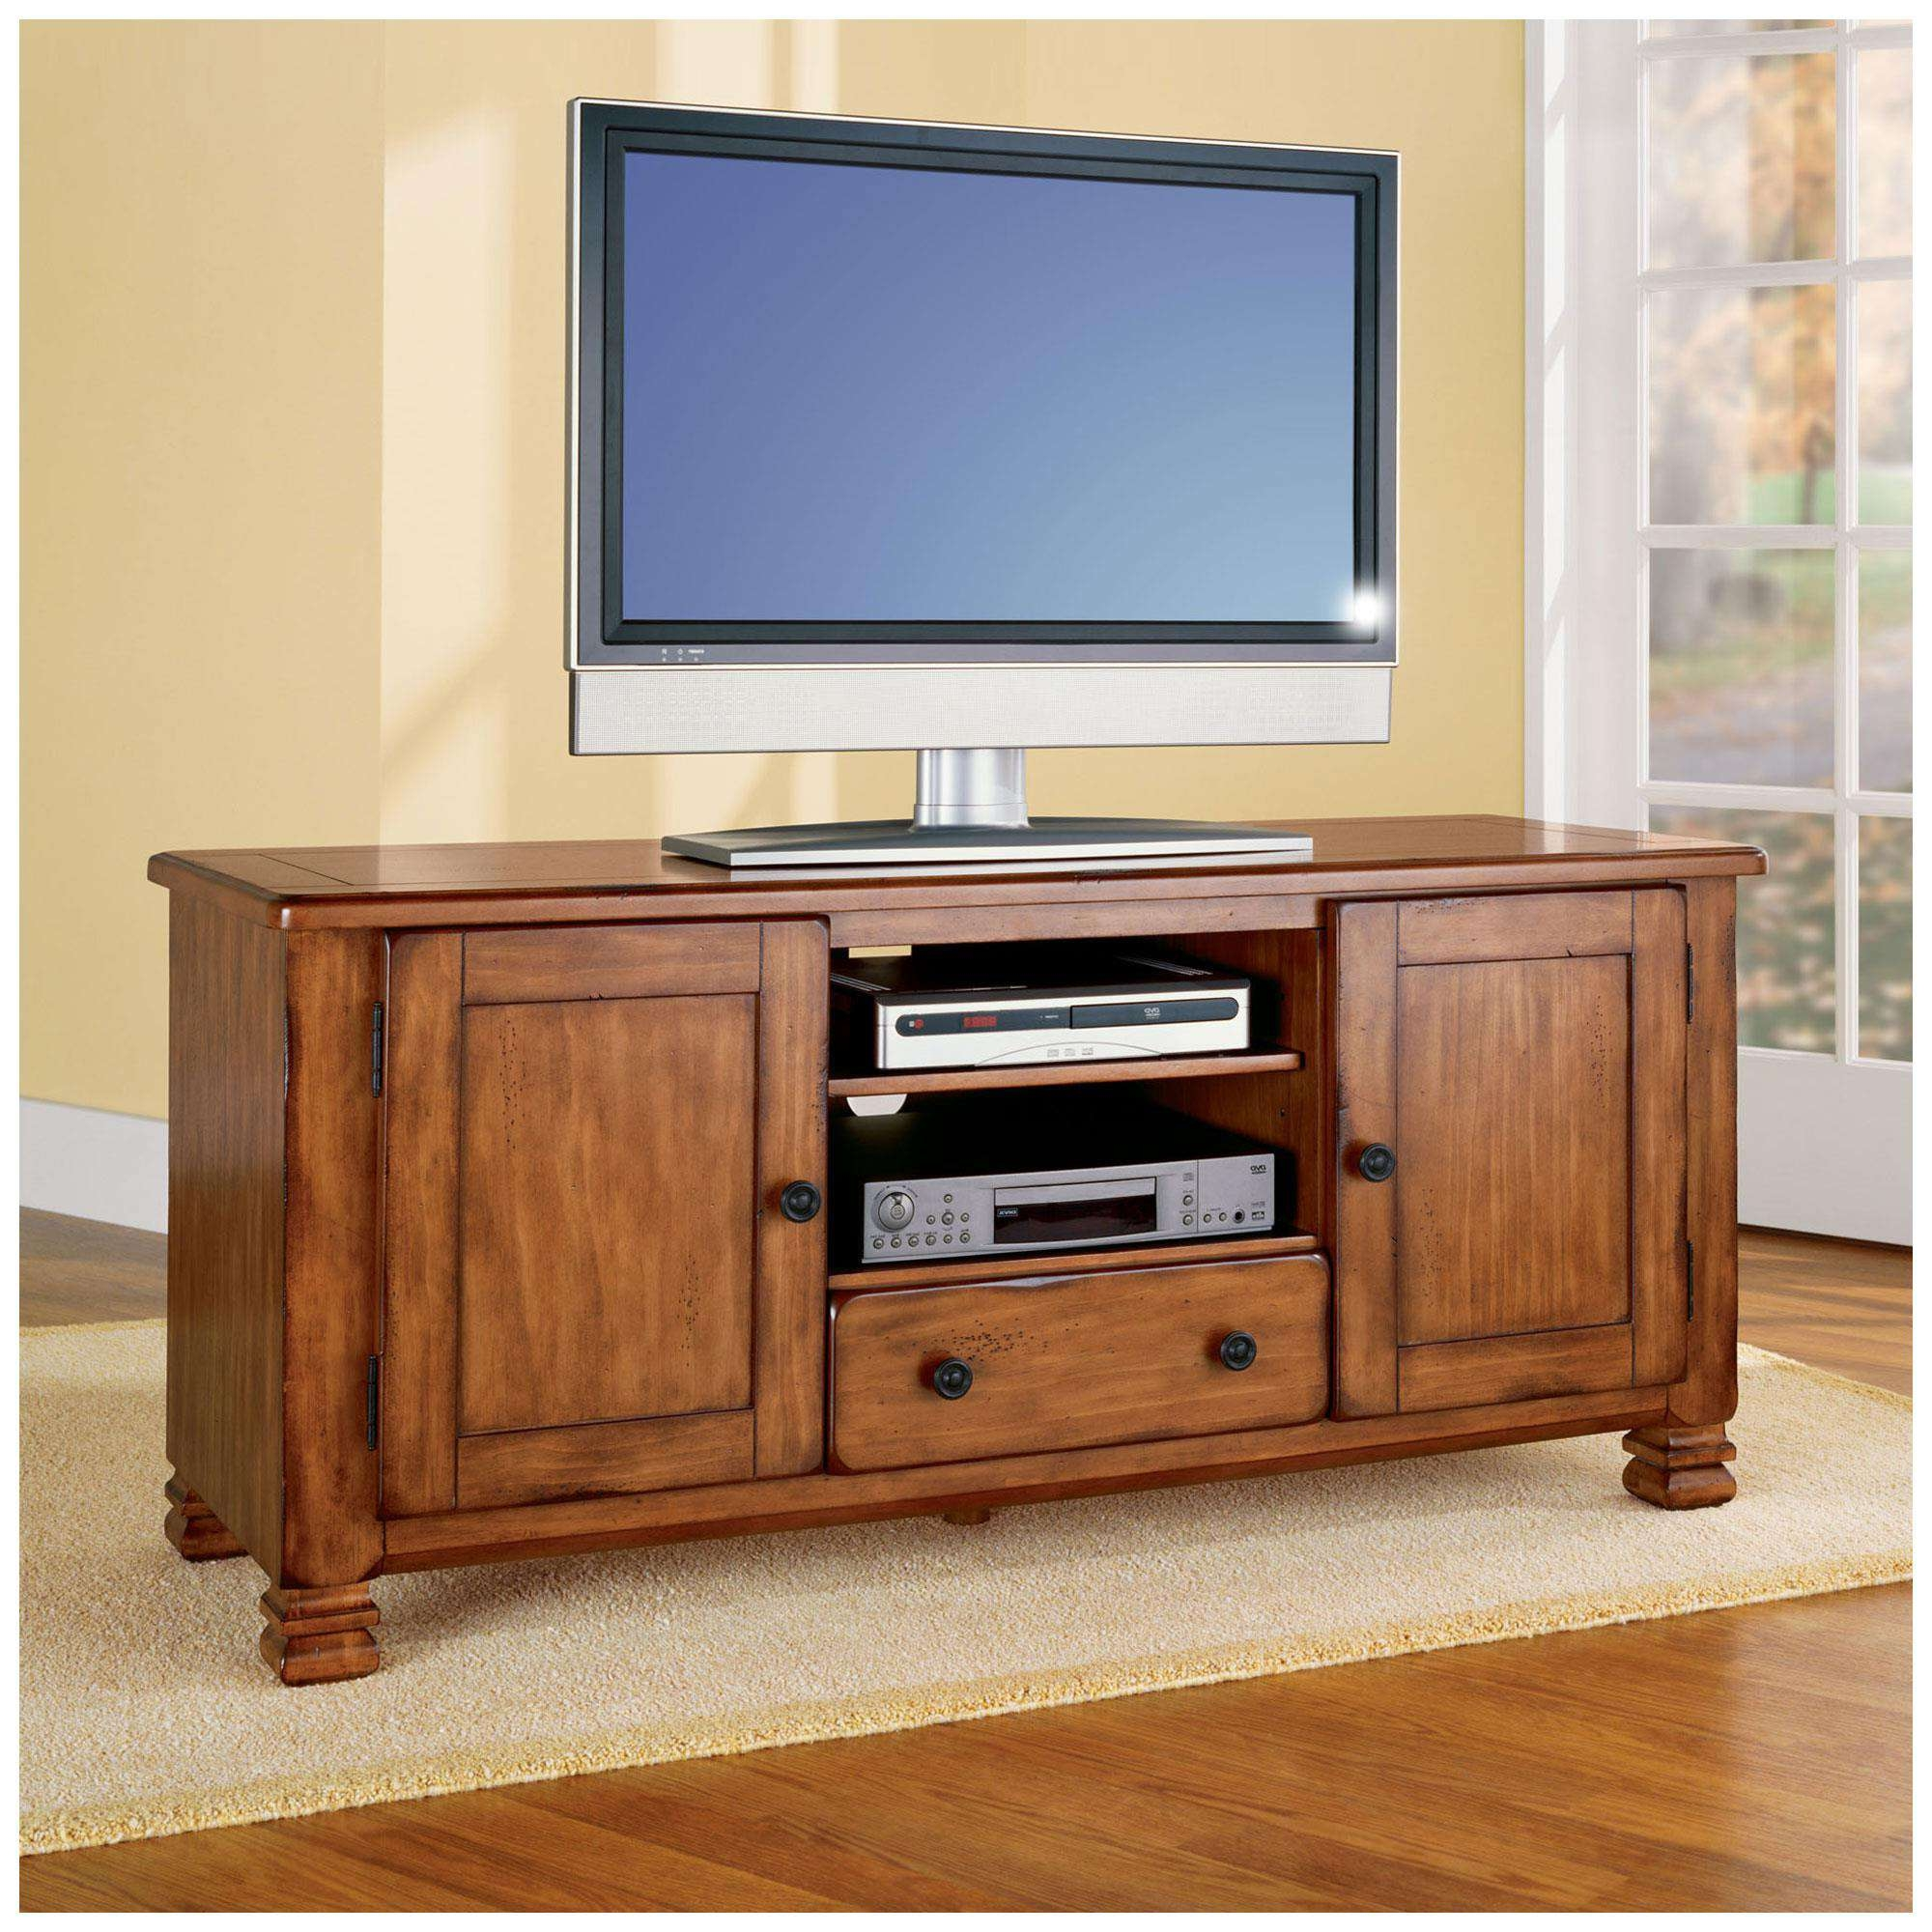 79 Literarywondrous Light Wood Tv Stand Photo Design Home Stands Regarding Light Cherry Tv Stands (Gallery 3 of 15)